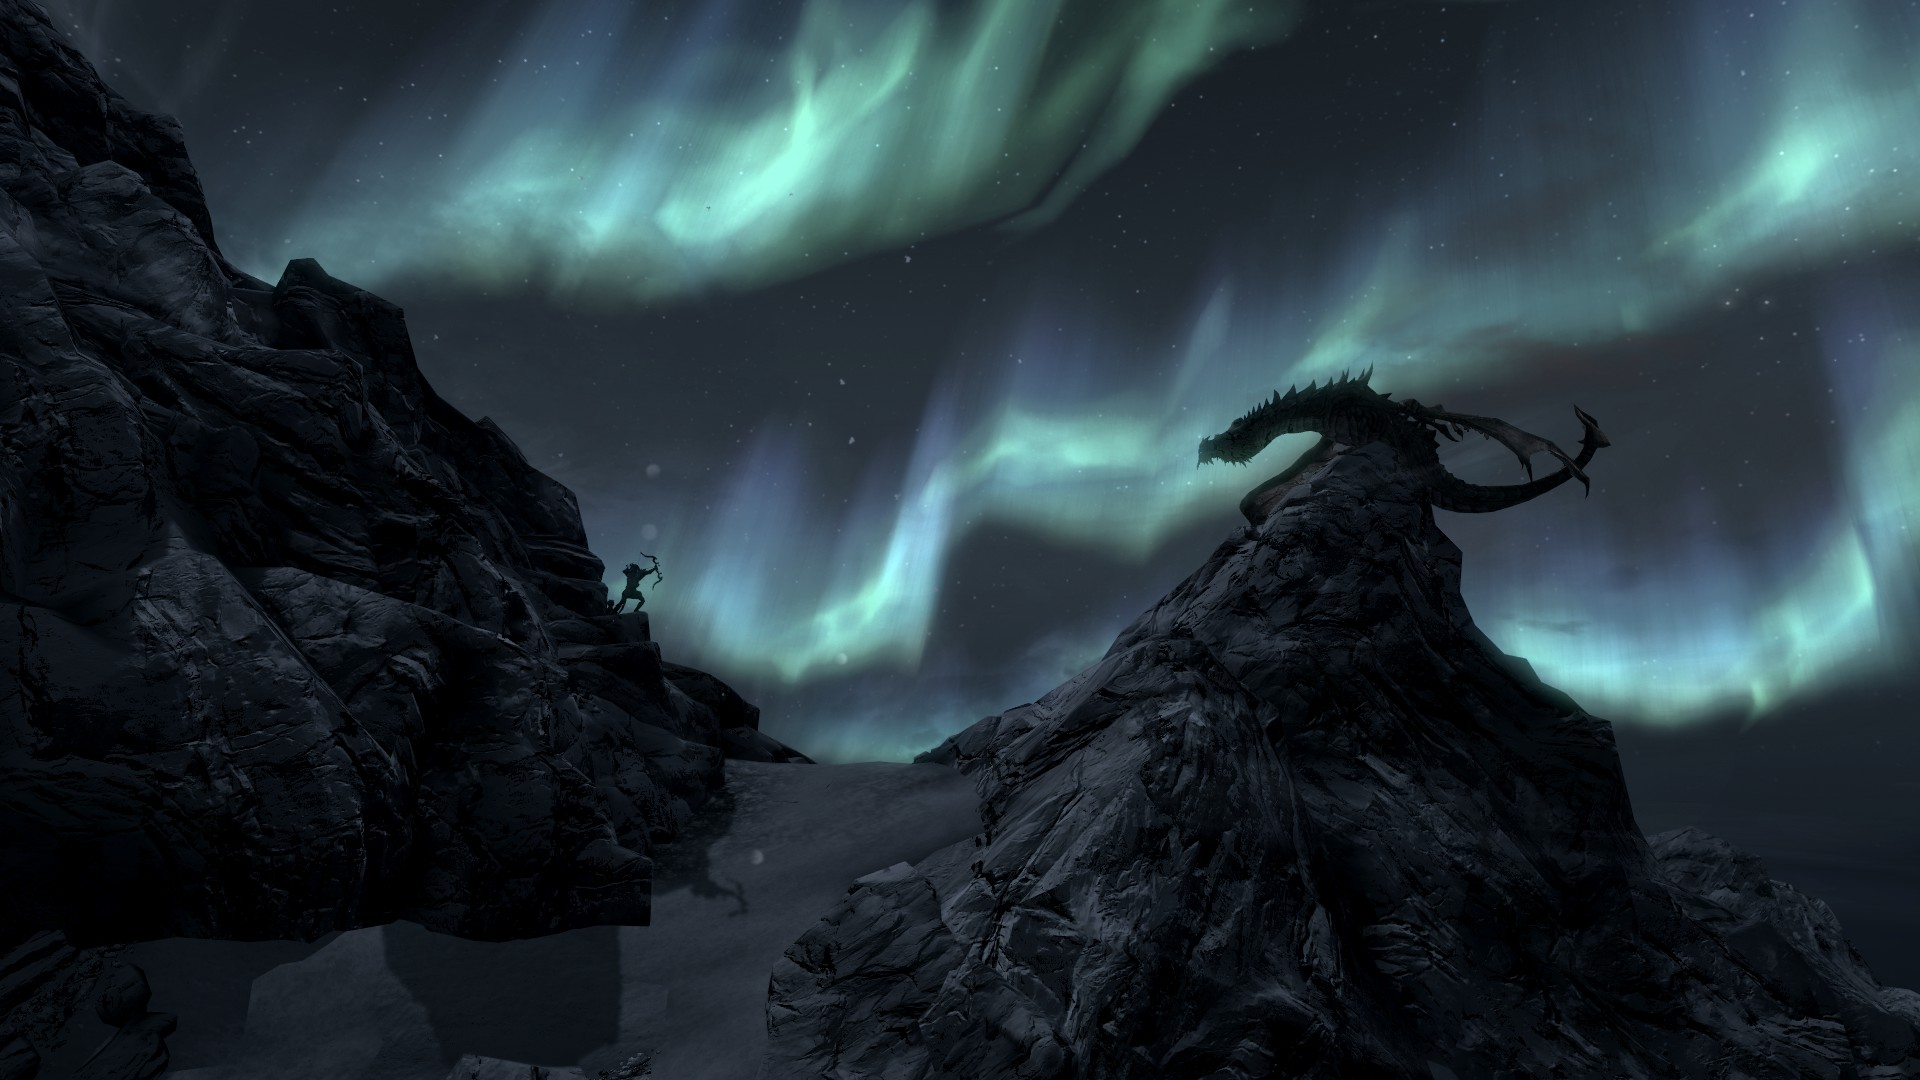 Skyrim Wallpapers For Pc Wallpapersafari